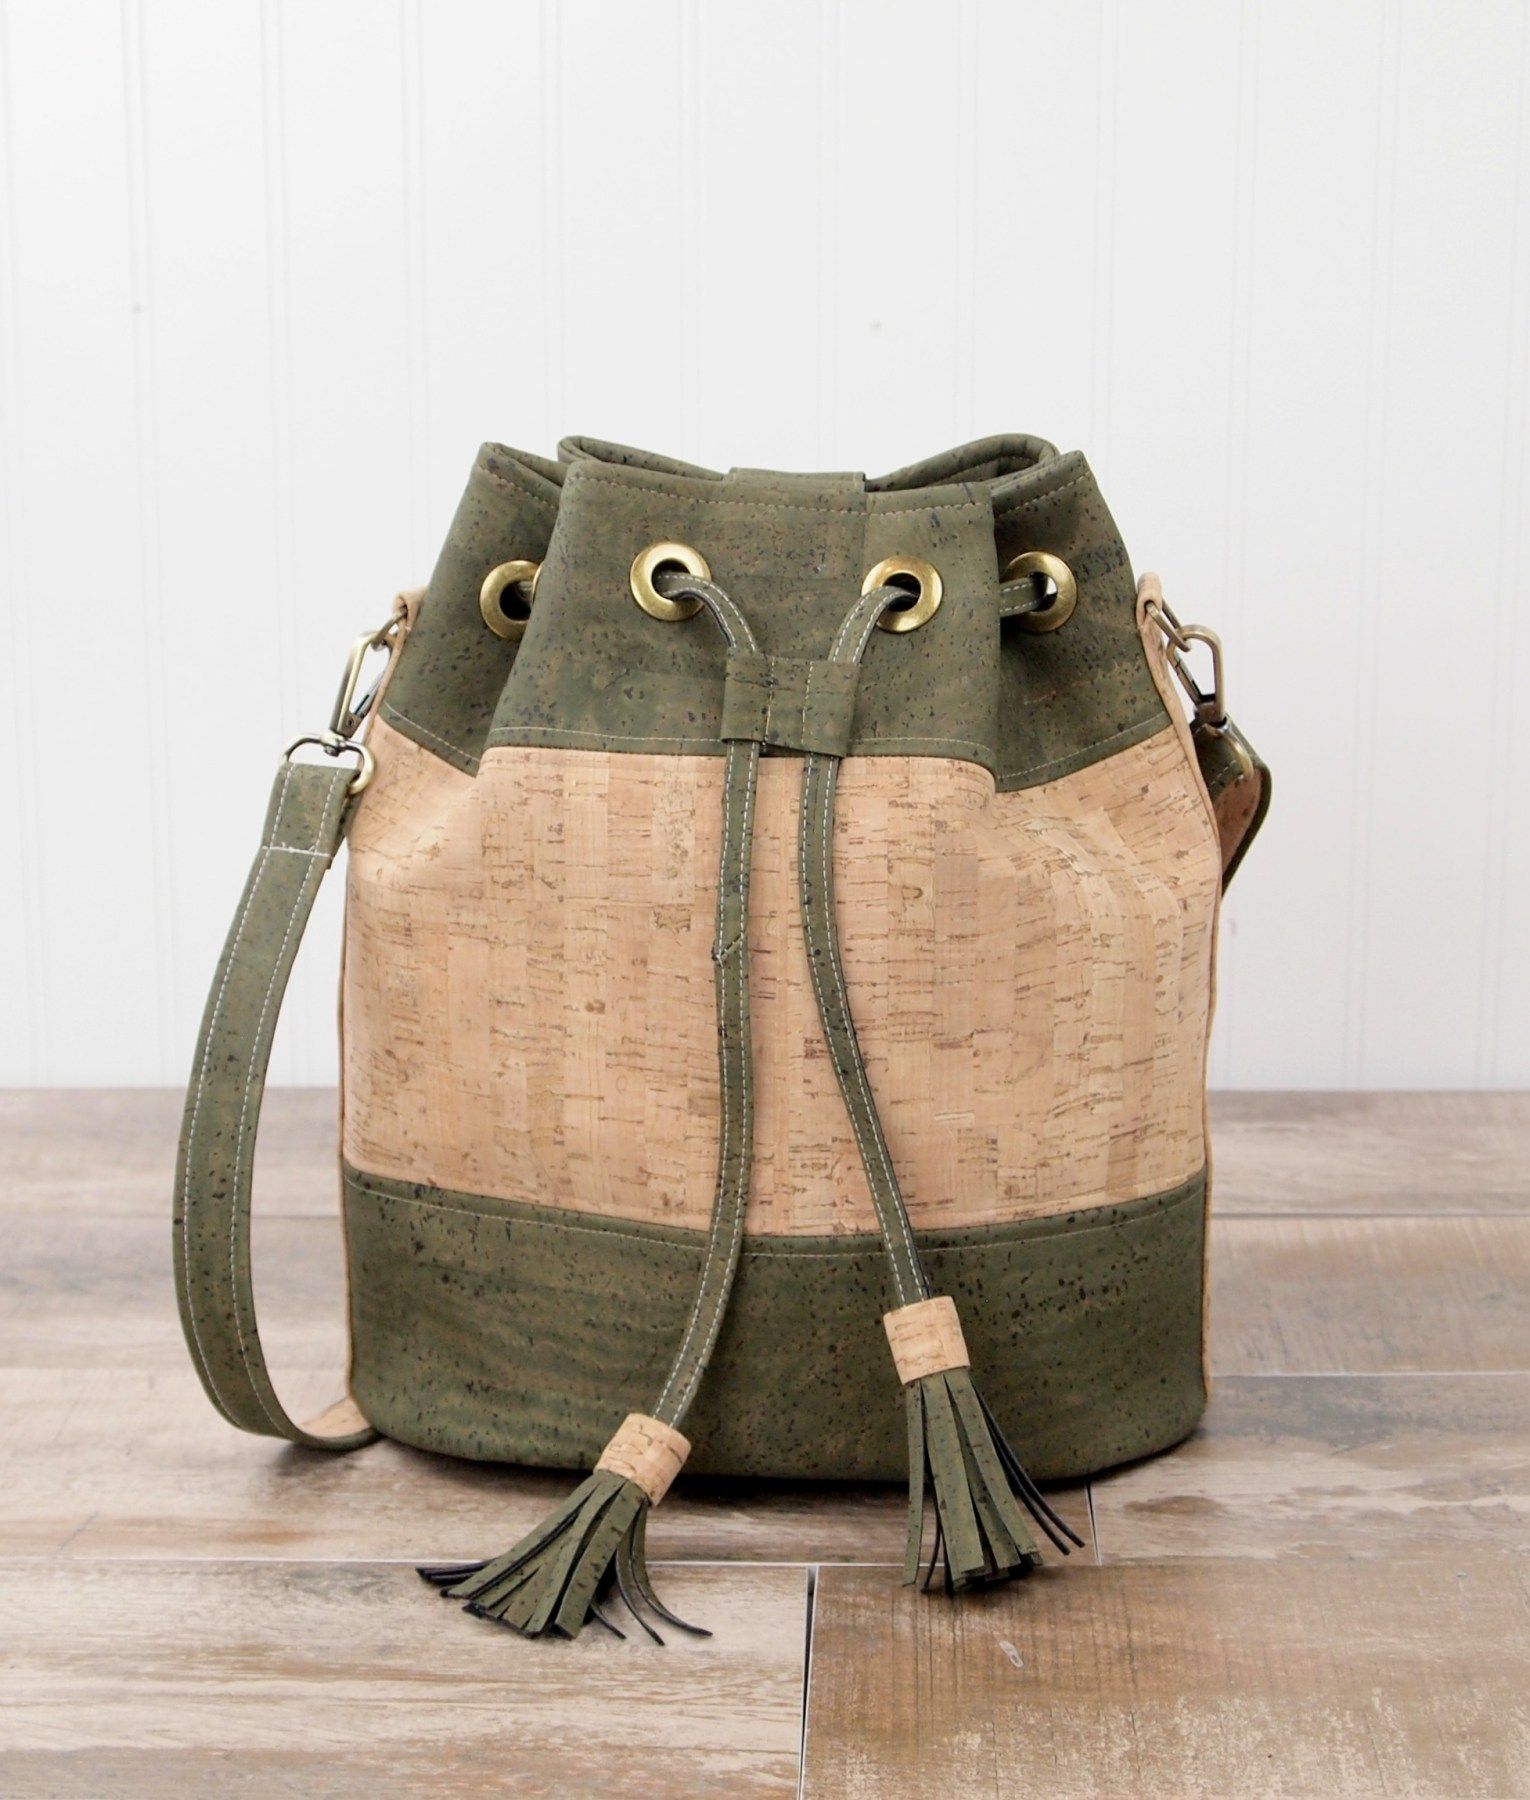 Magnolia Bucket Bag Cork Fabric Pattern - Introduction to Sewing with Cork  Fabric. Learn how to sew with cork as you make this bag. 6c950ea28f9e4